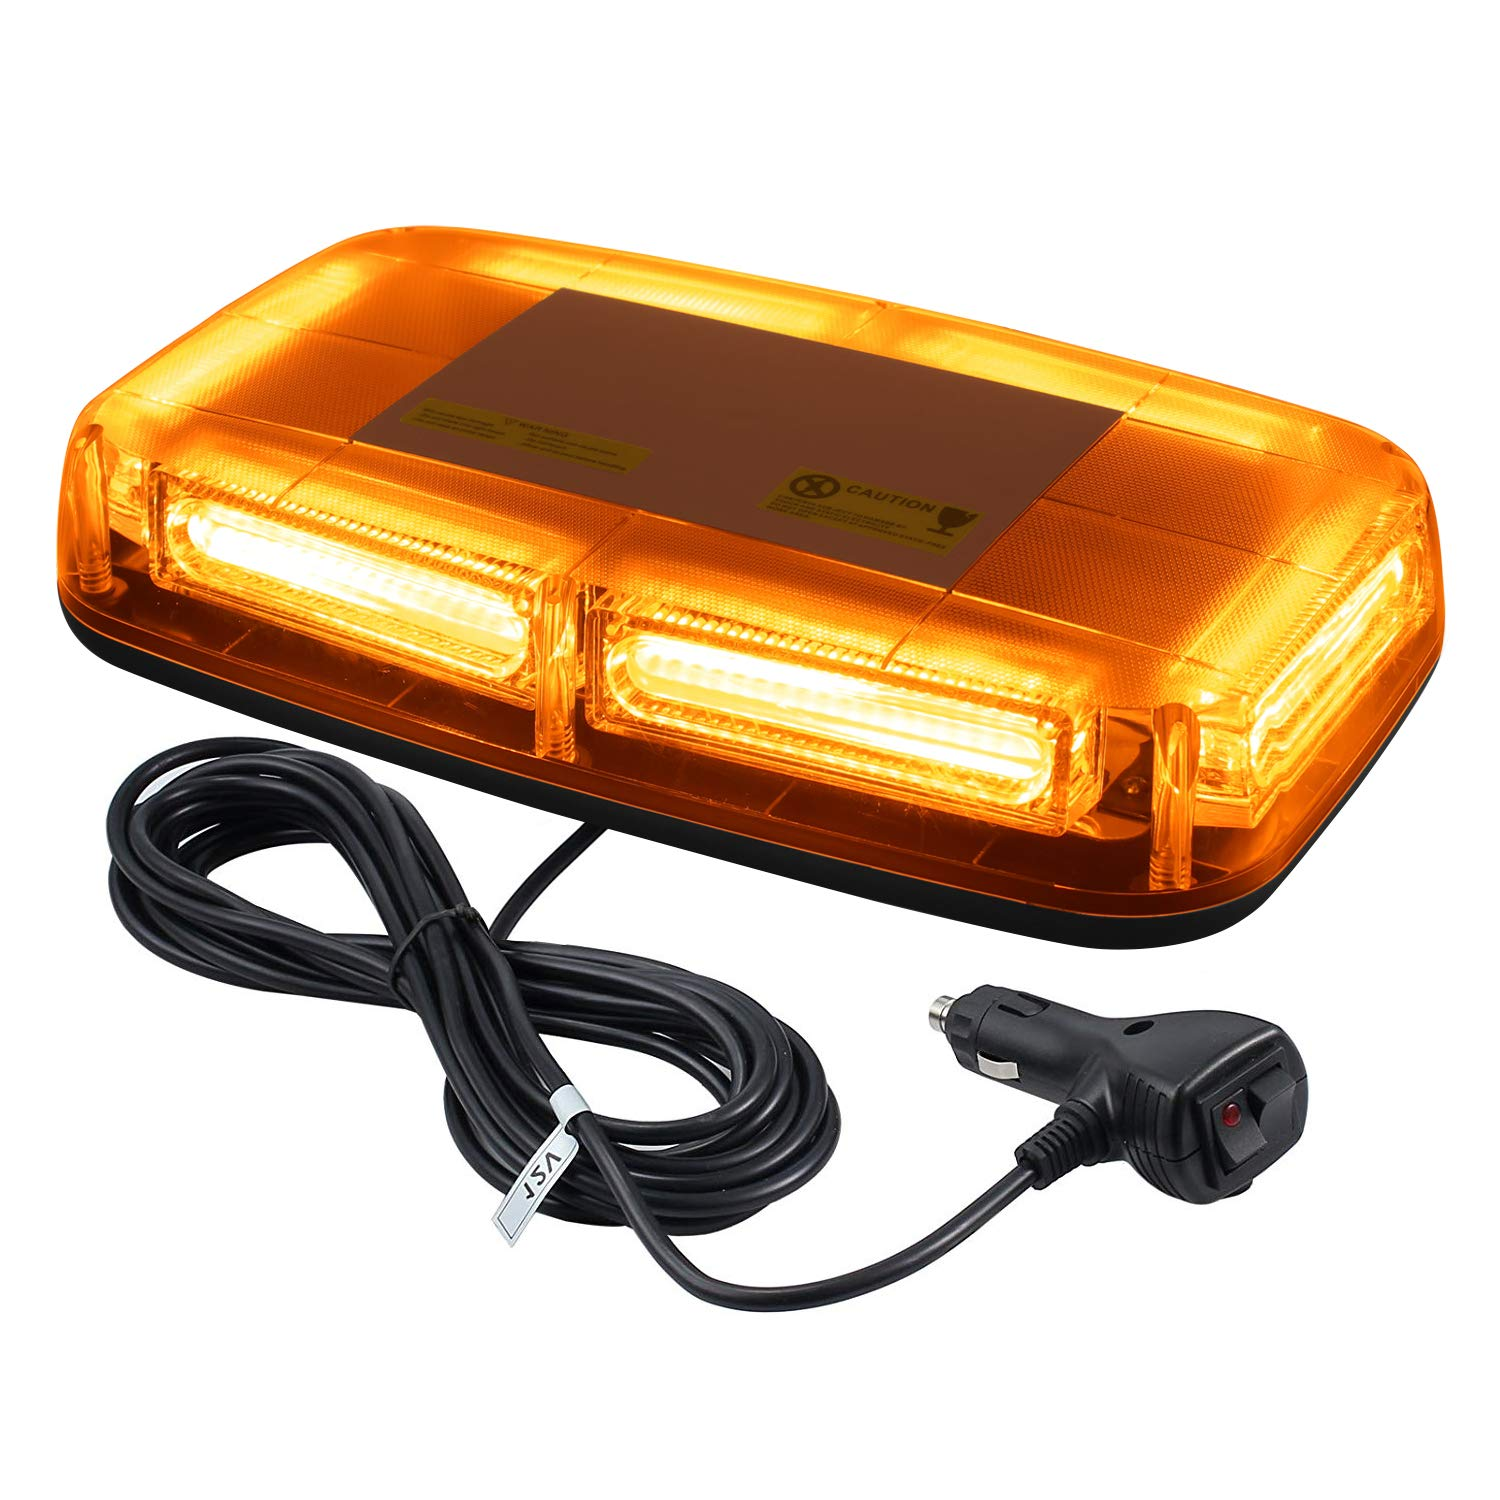 NISUNS 12V 24 Watt COB LED Amber/Yellow Roof Top High Intensity Law Enforcement Emergency Hazard Warning Strobe Beacon Lights w/Magnetic Base (Amber)